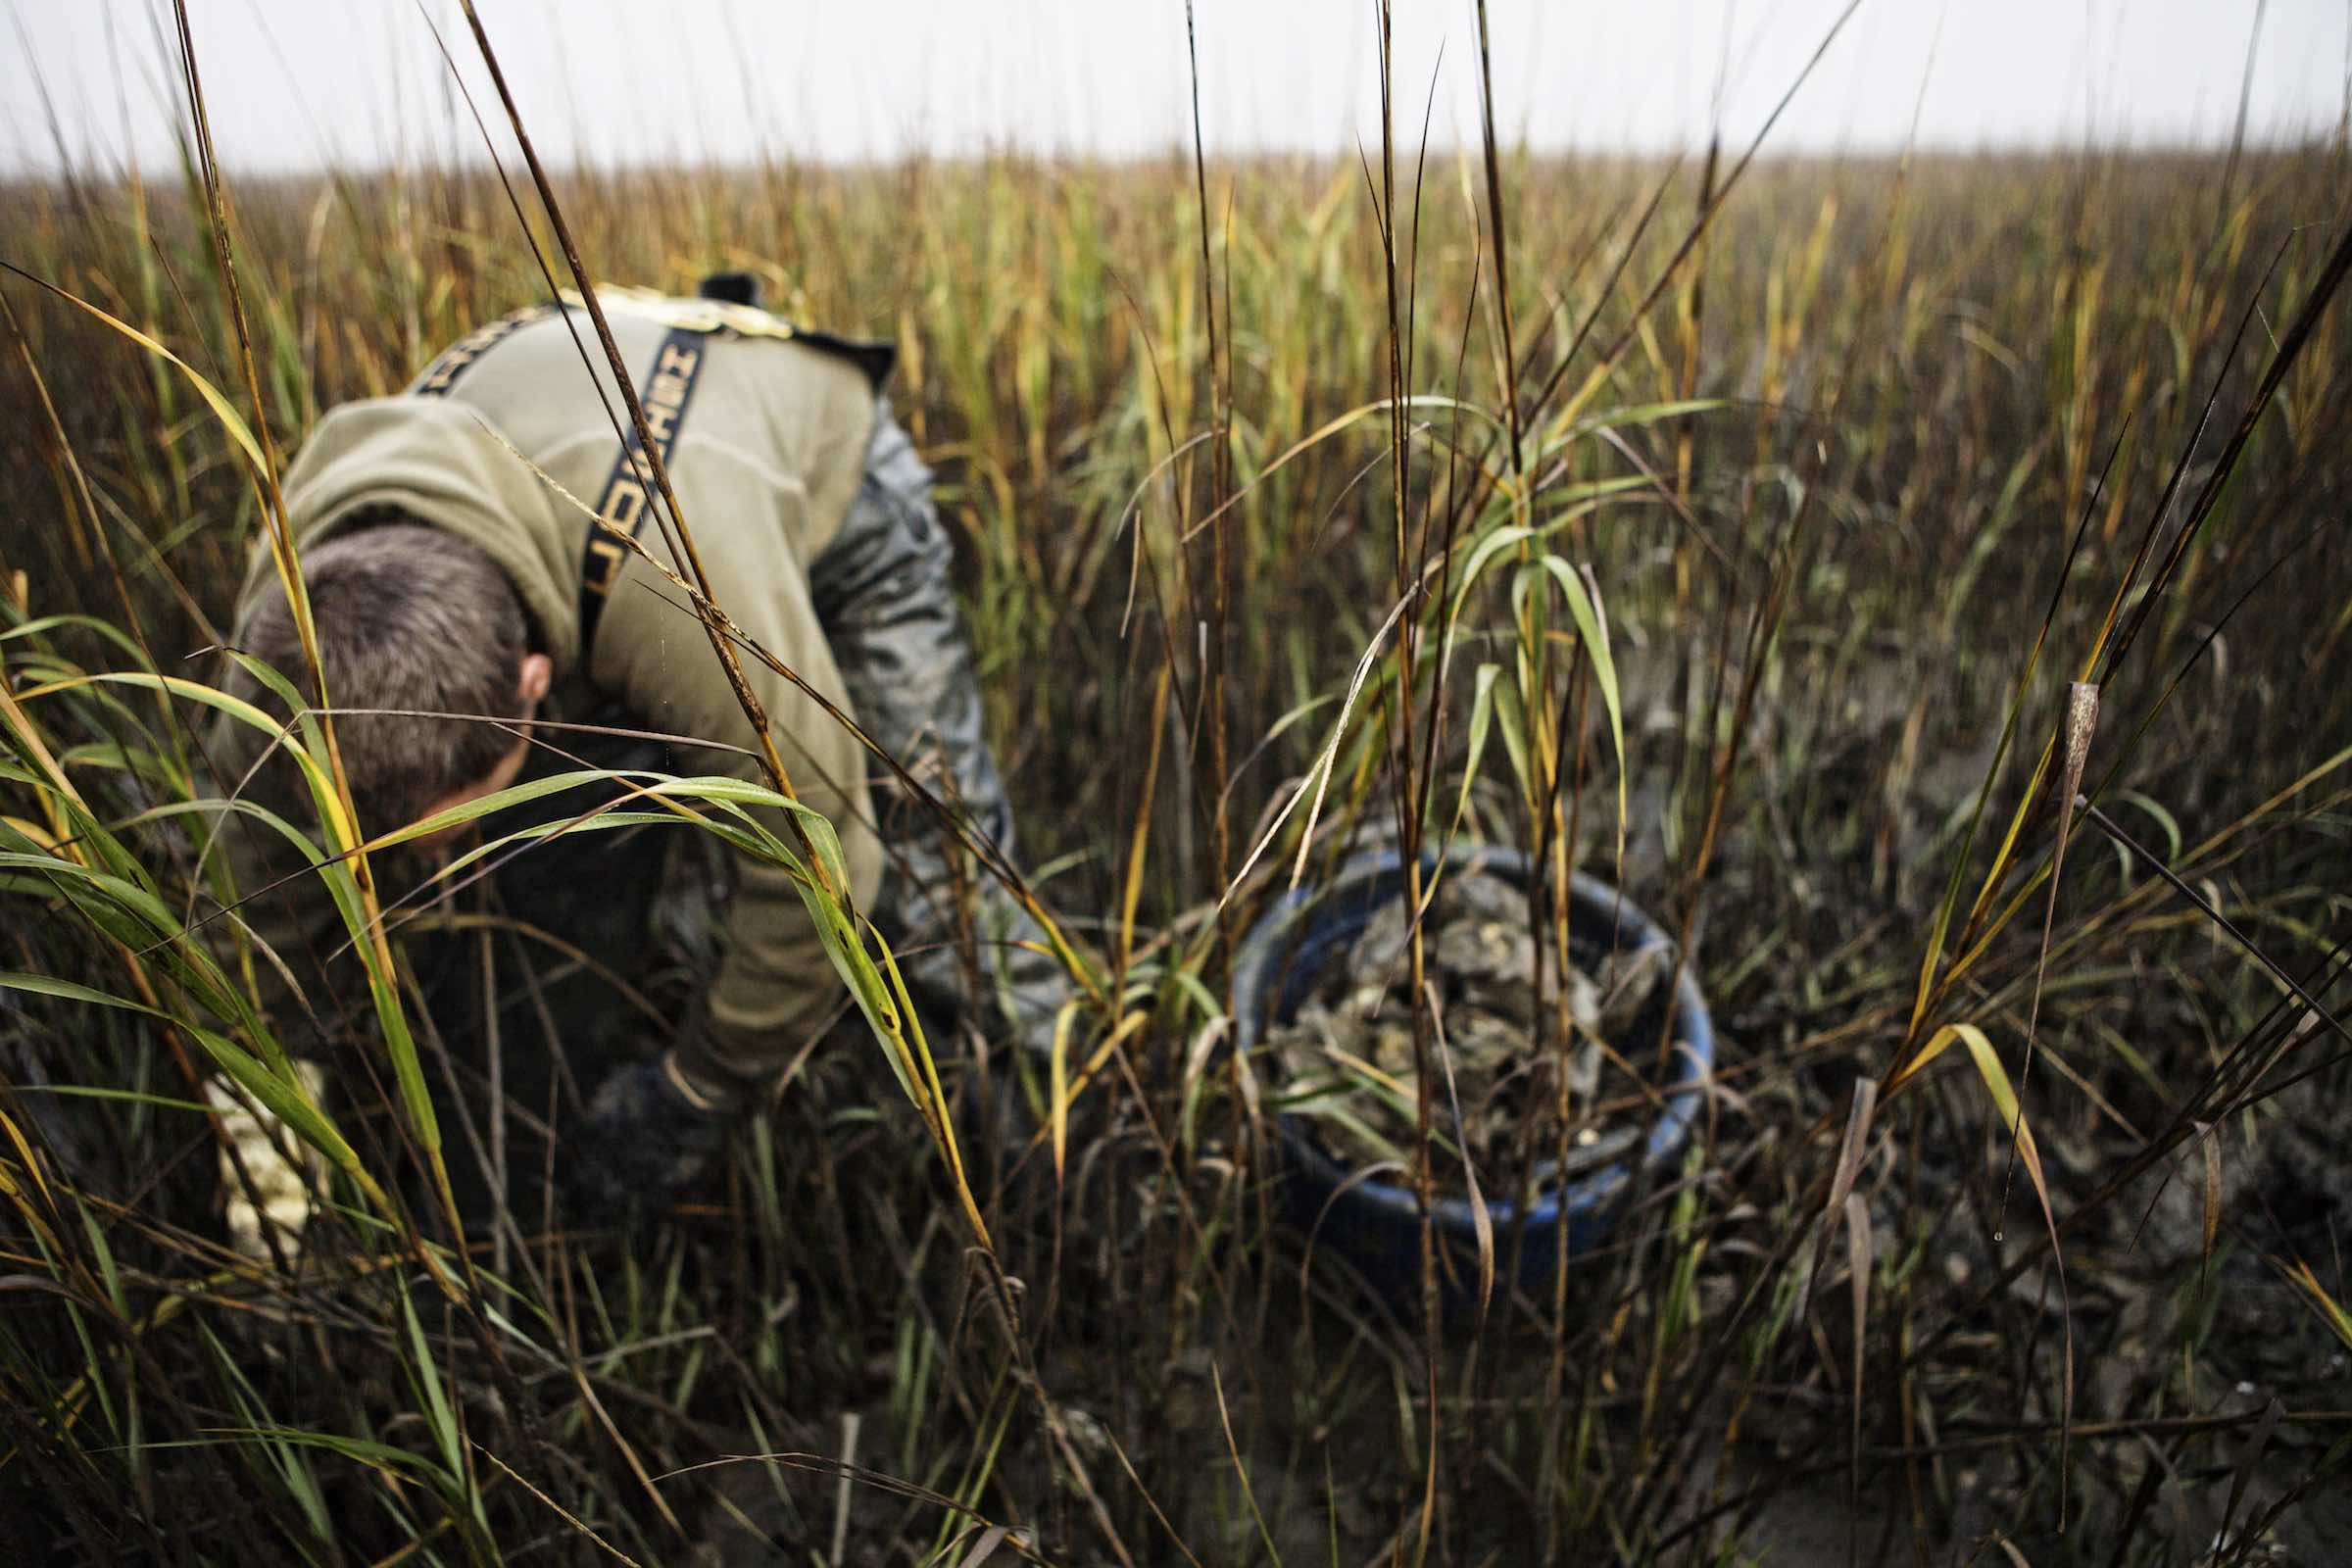 Jody Horton Photography - Fisherman harvesting oysters in tall grass.